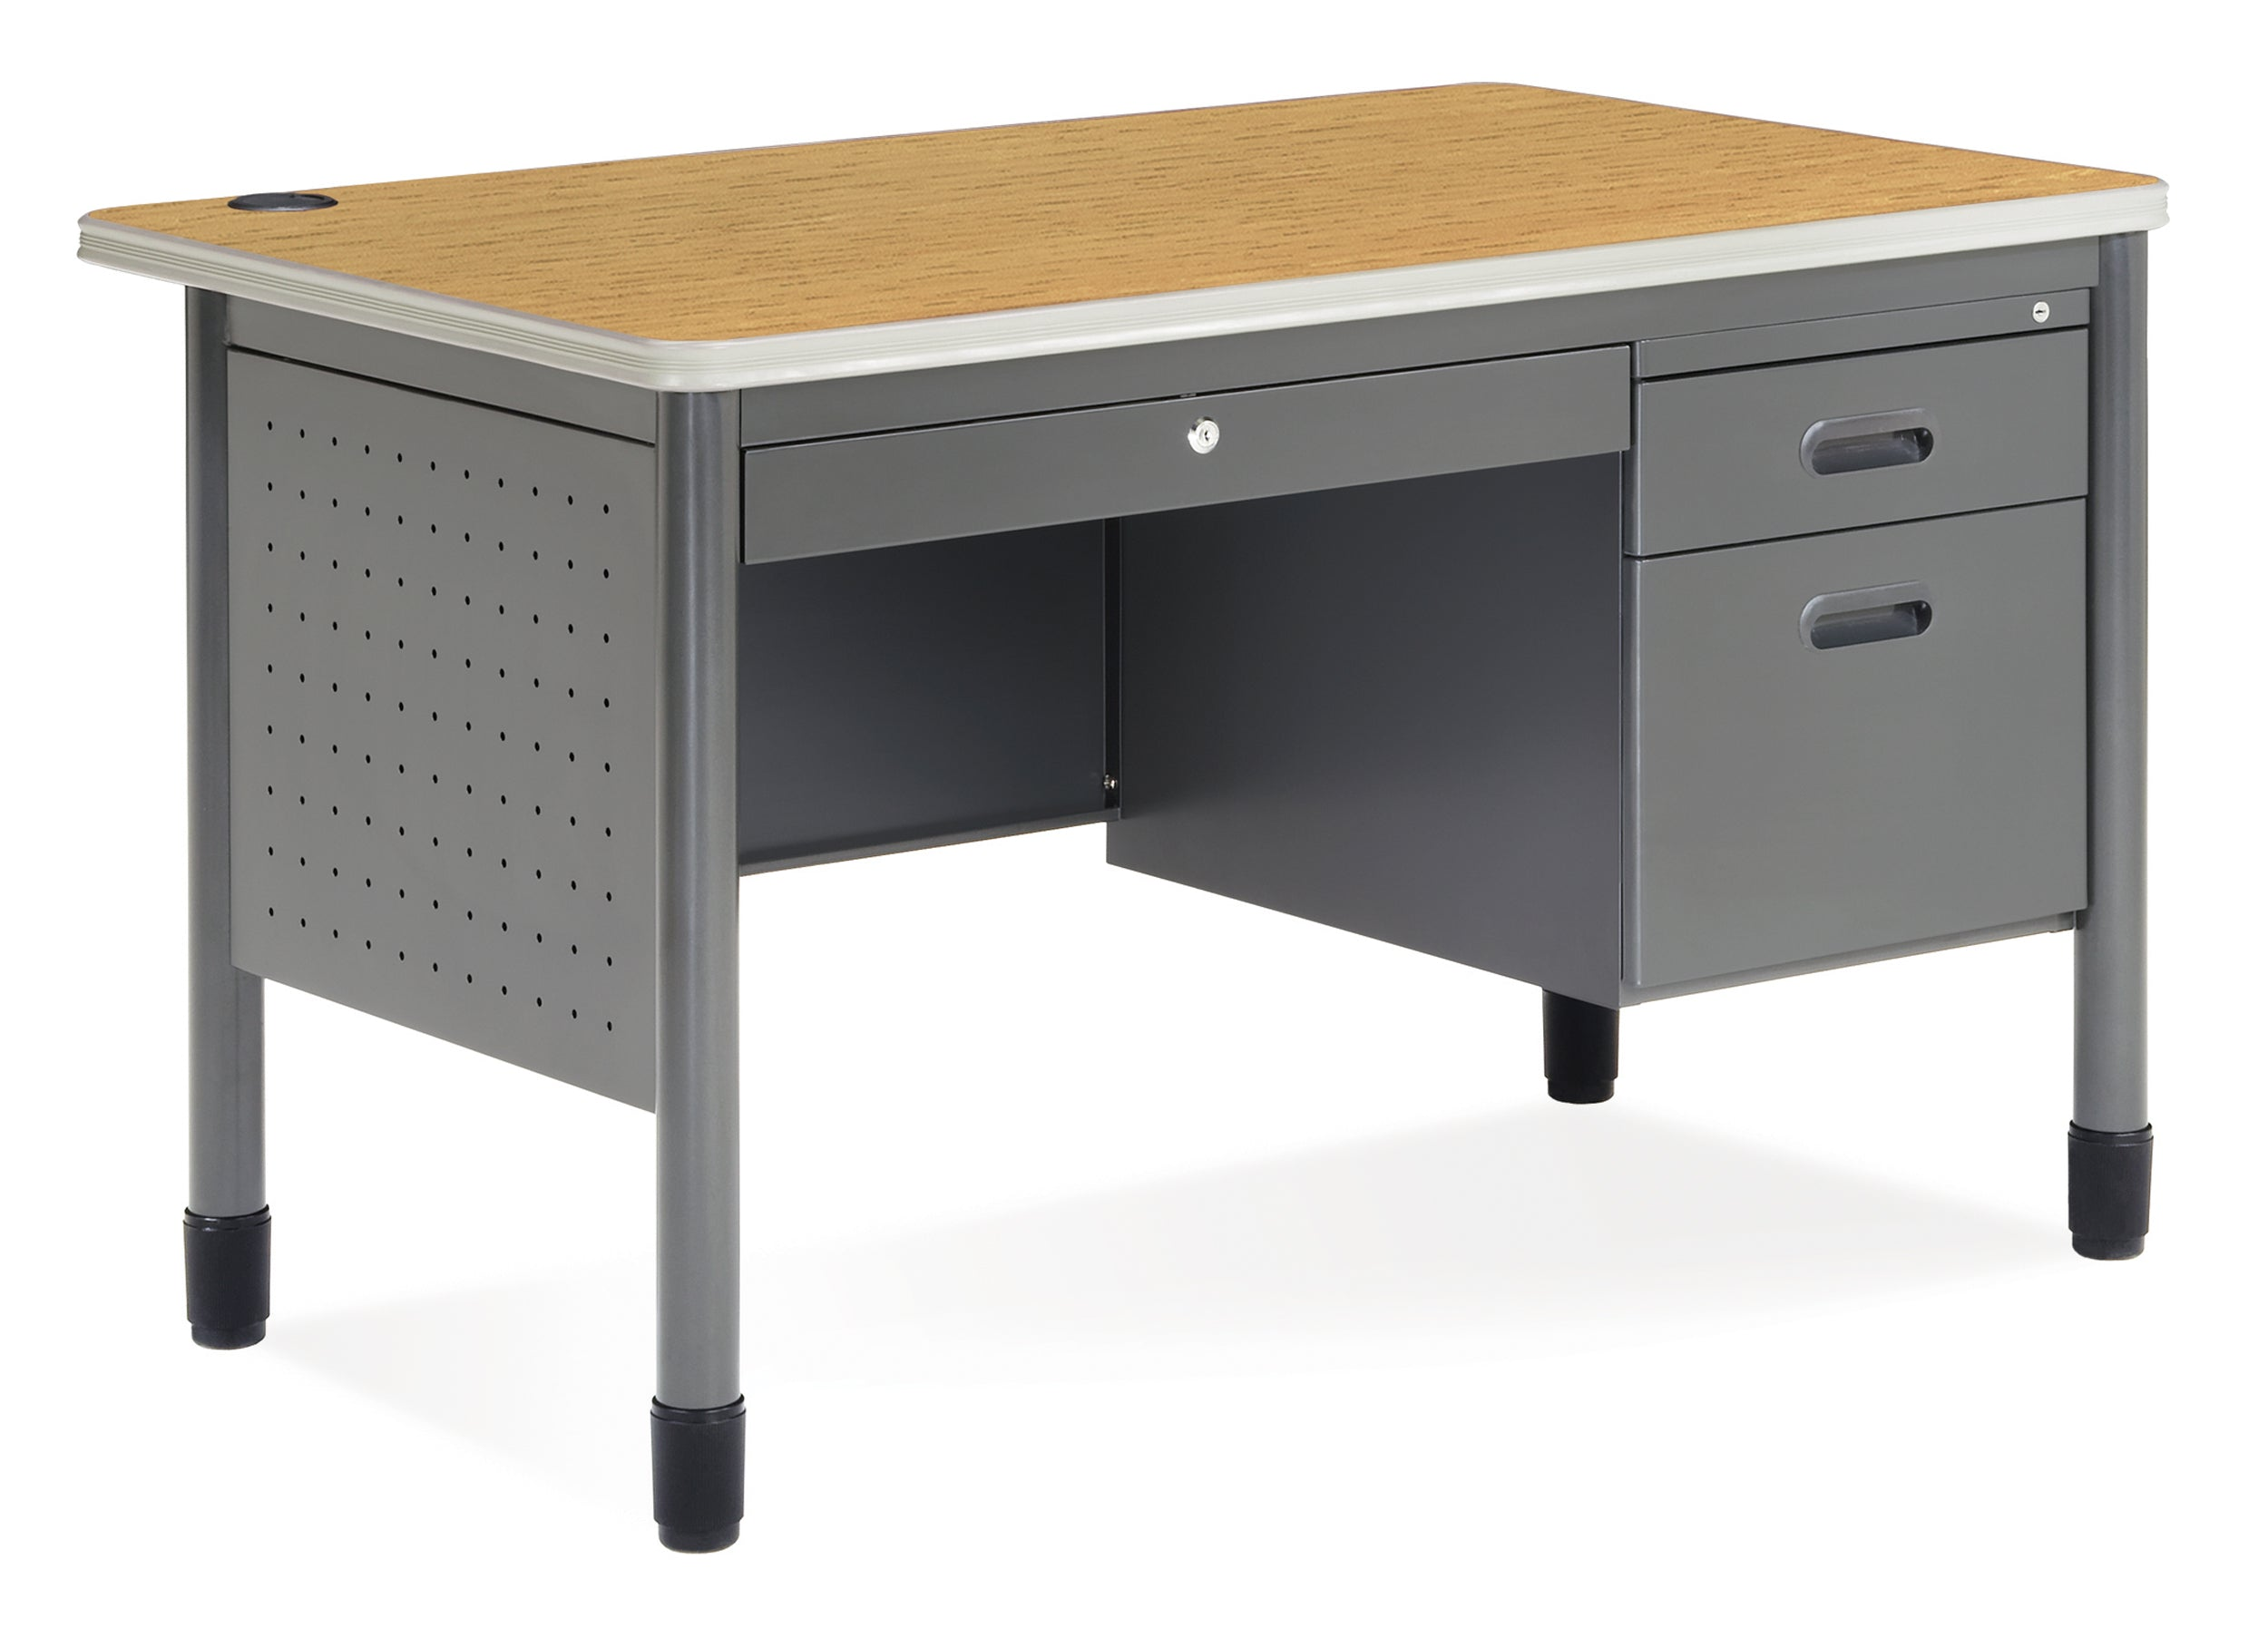 Ofminc Model 66348 Single Pedestal Teacher Desk